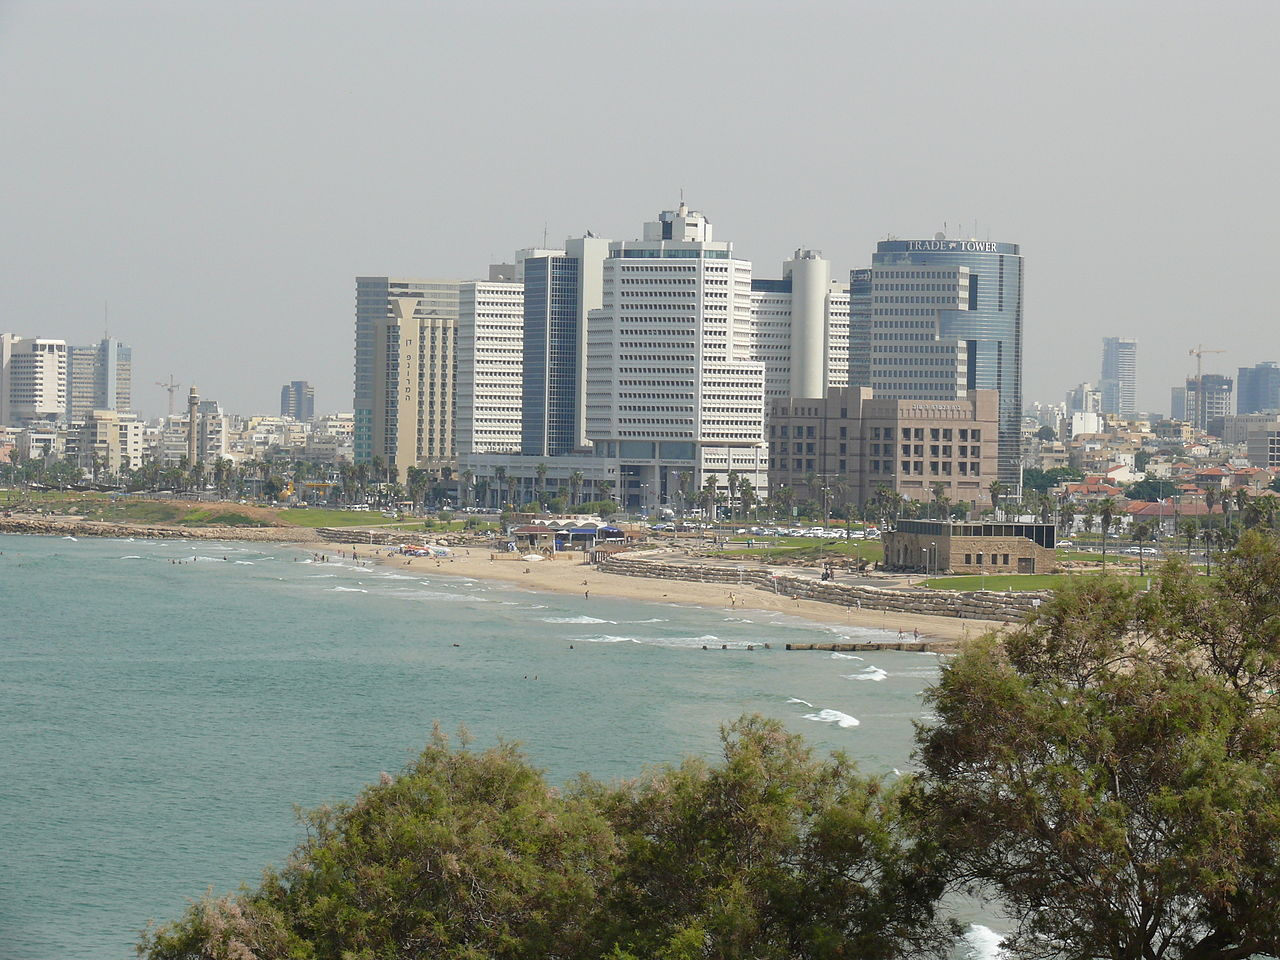 Tel Aviv Wikipedia: File:Coast Of Tel Aviv From Jaffa (9198130137).jpg